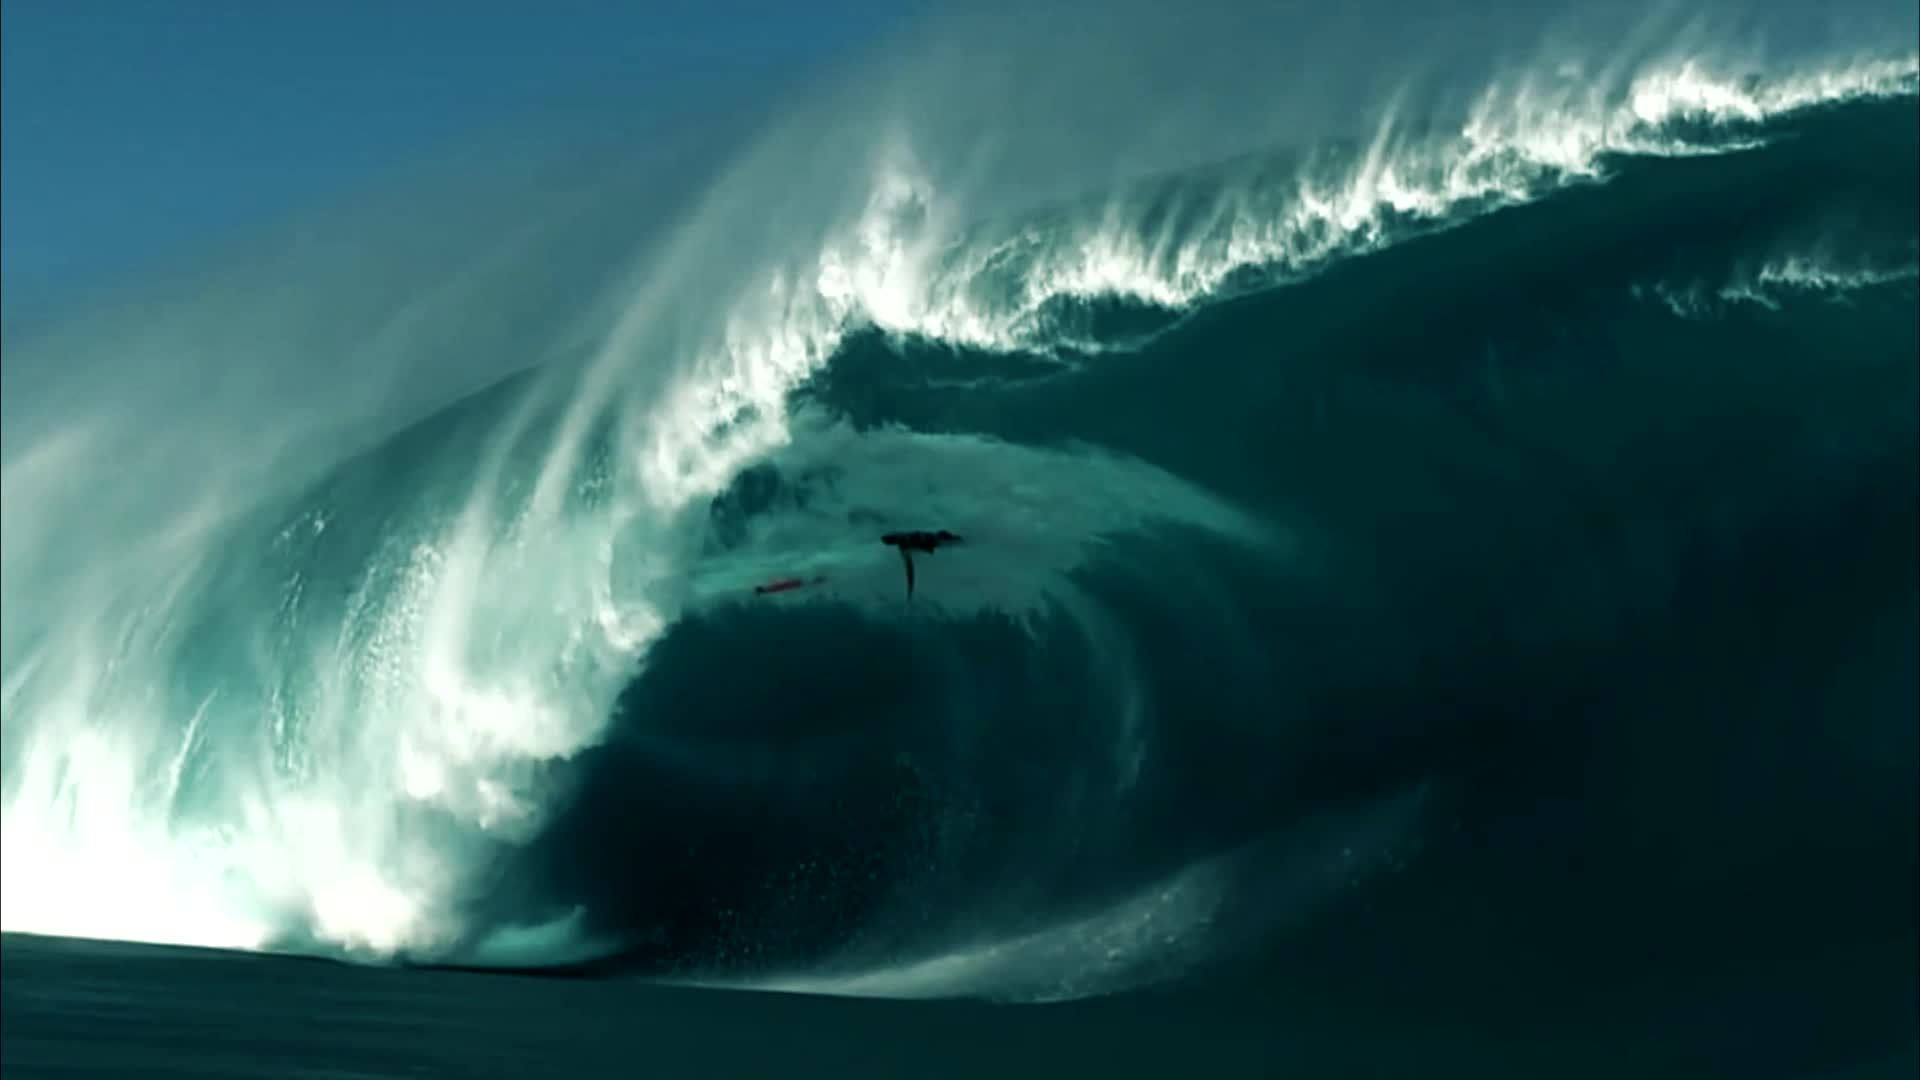 surf, surfing, waves, Teahupo'o reef break- 'to sever the head' 'place of skulls' GIFs